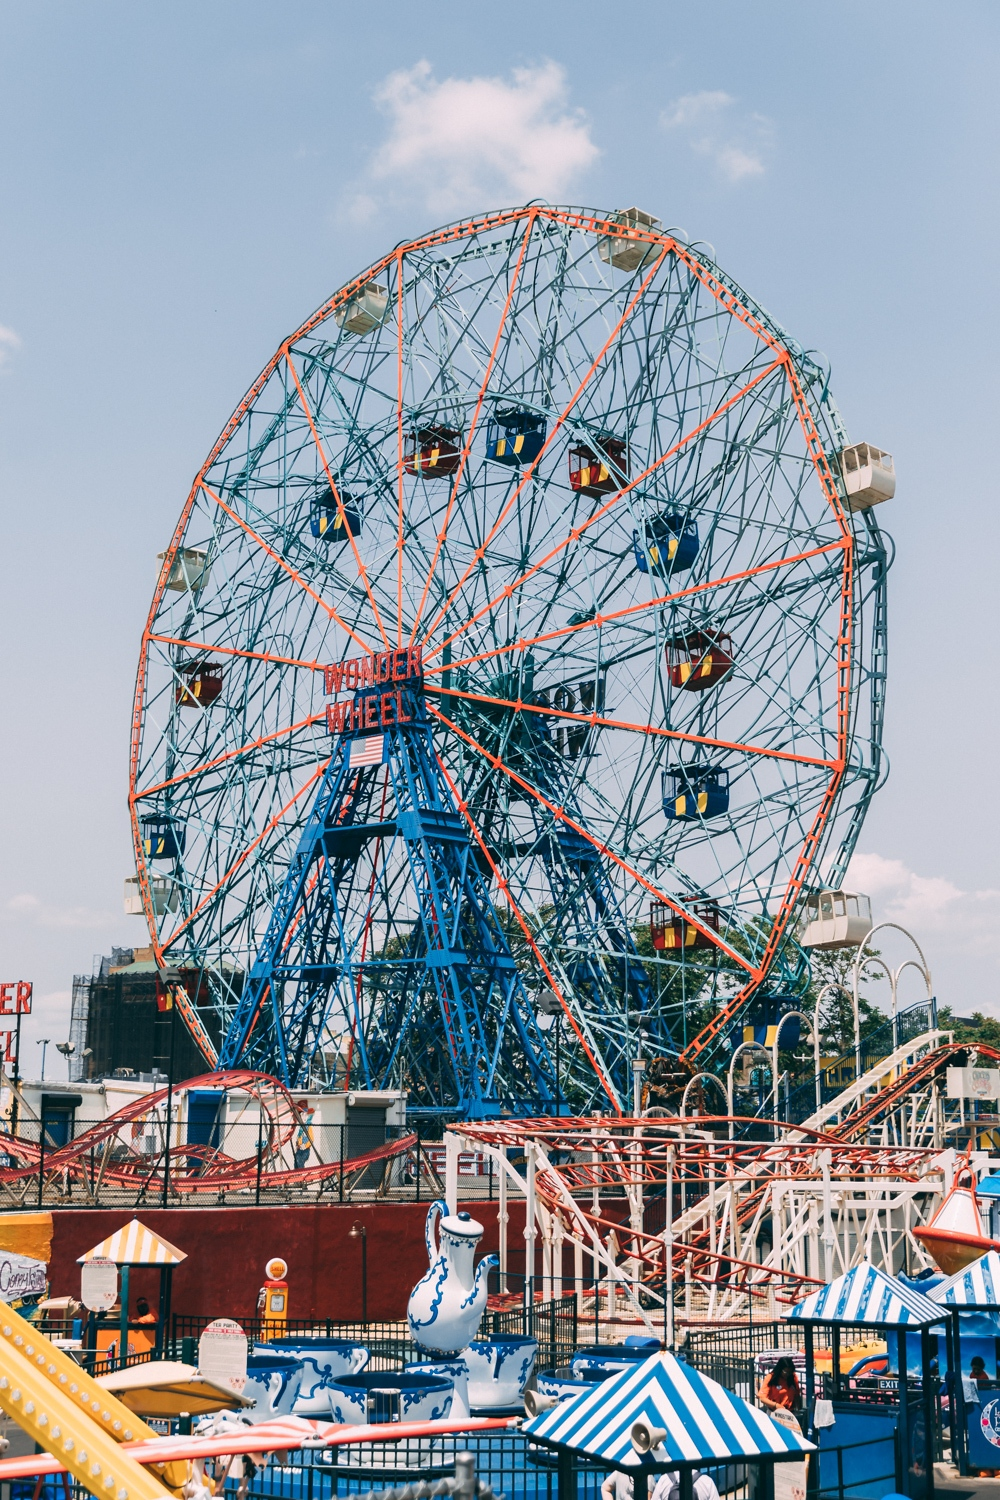 Coney Island Amusement Park in New York City.